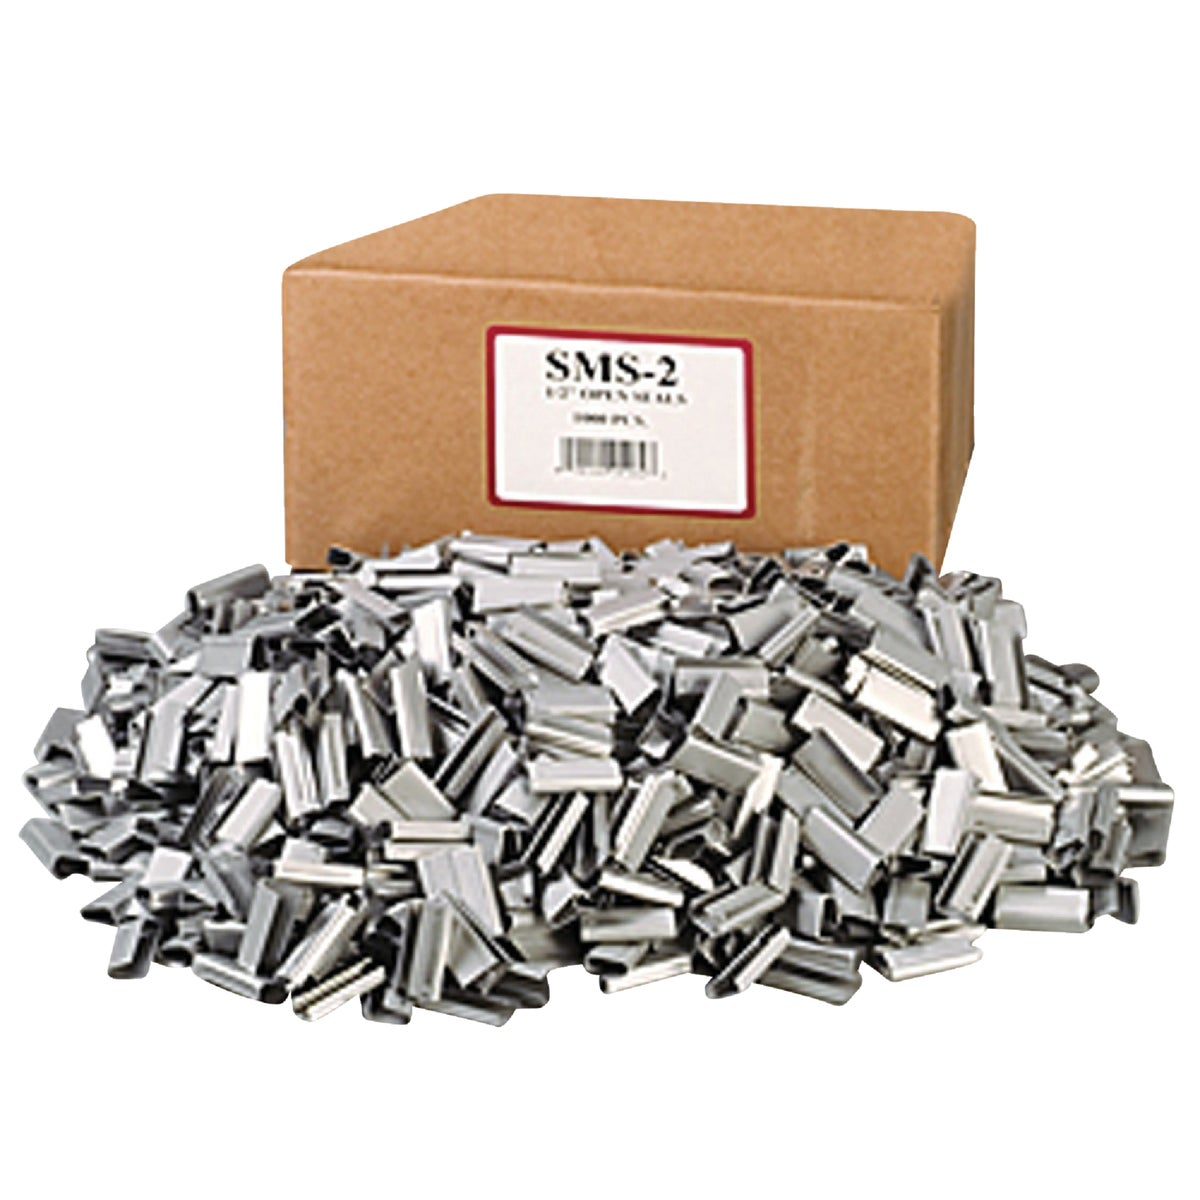 "1000PK 1/2"" METAL SEALS - SMS2 by Nifty Products"